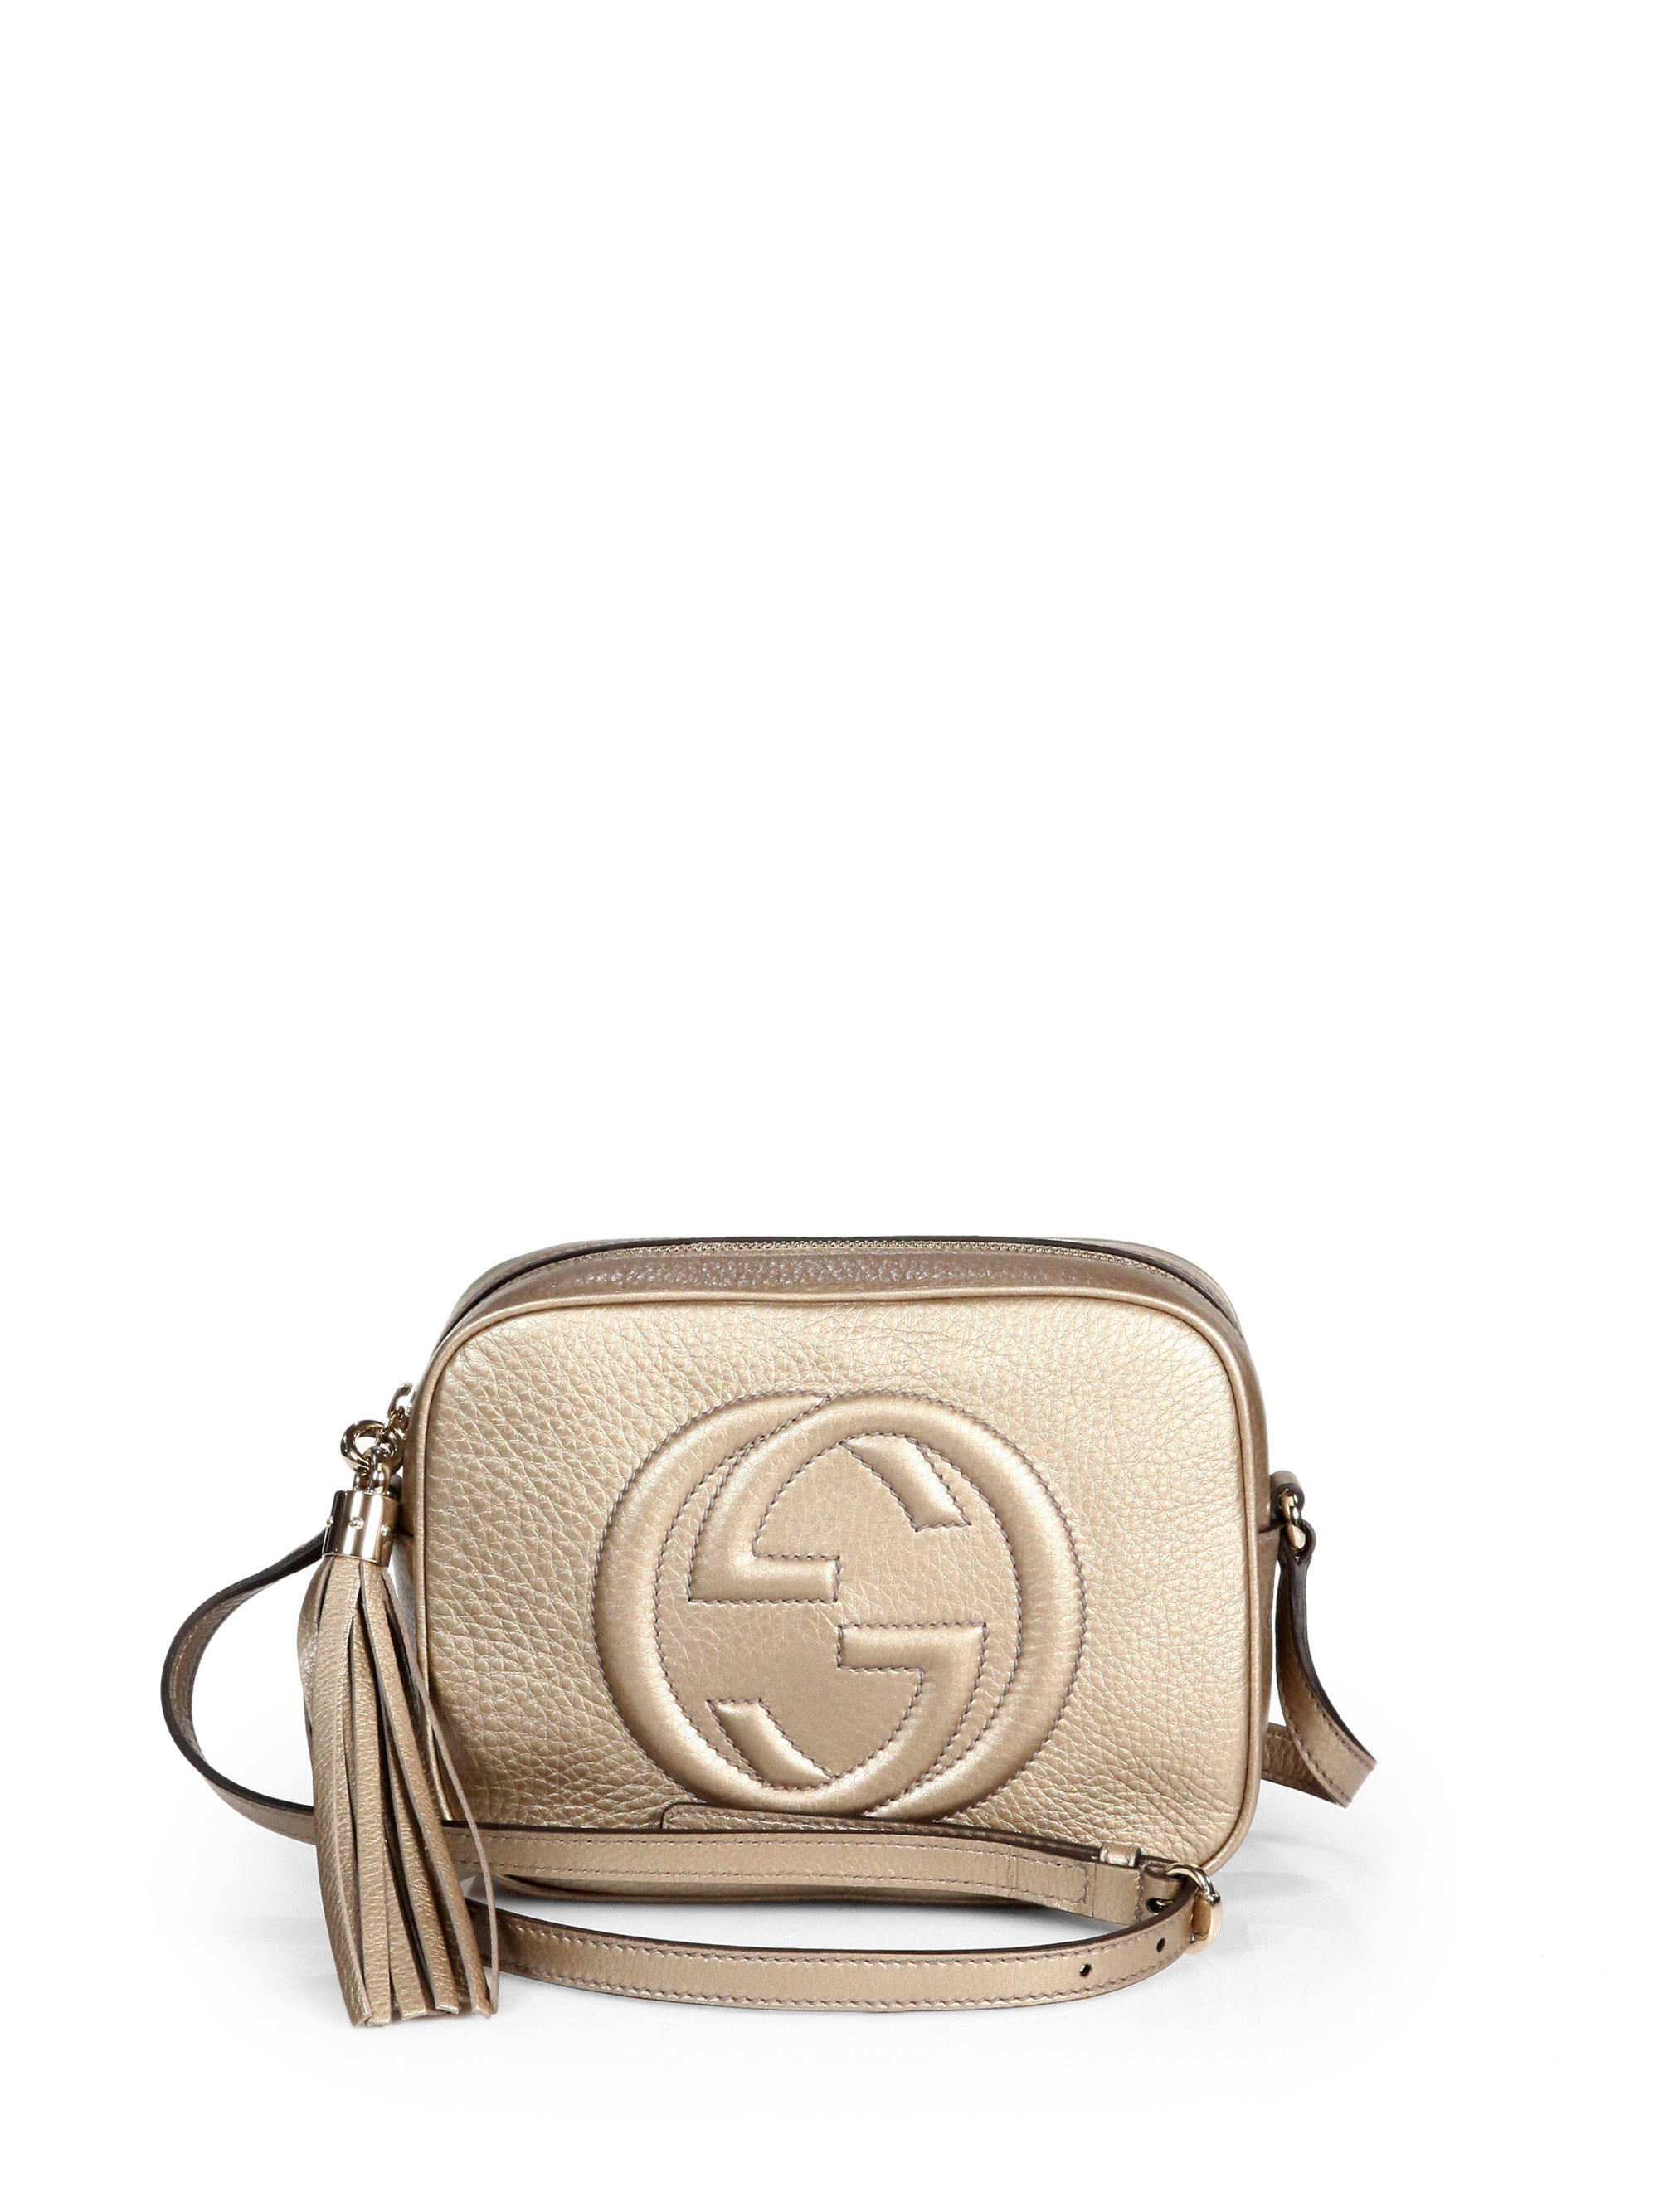 1e369f9e12 Gallery. Previously sold at: Saks Fifth Avenue · Women's Gucci Soho Bag